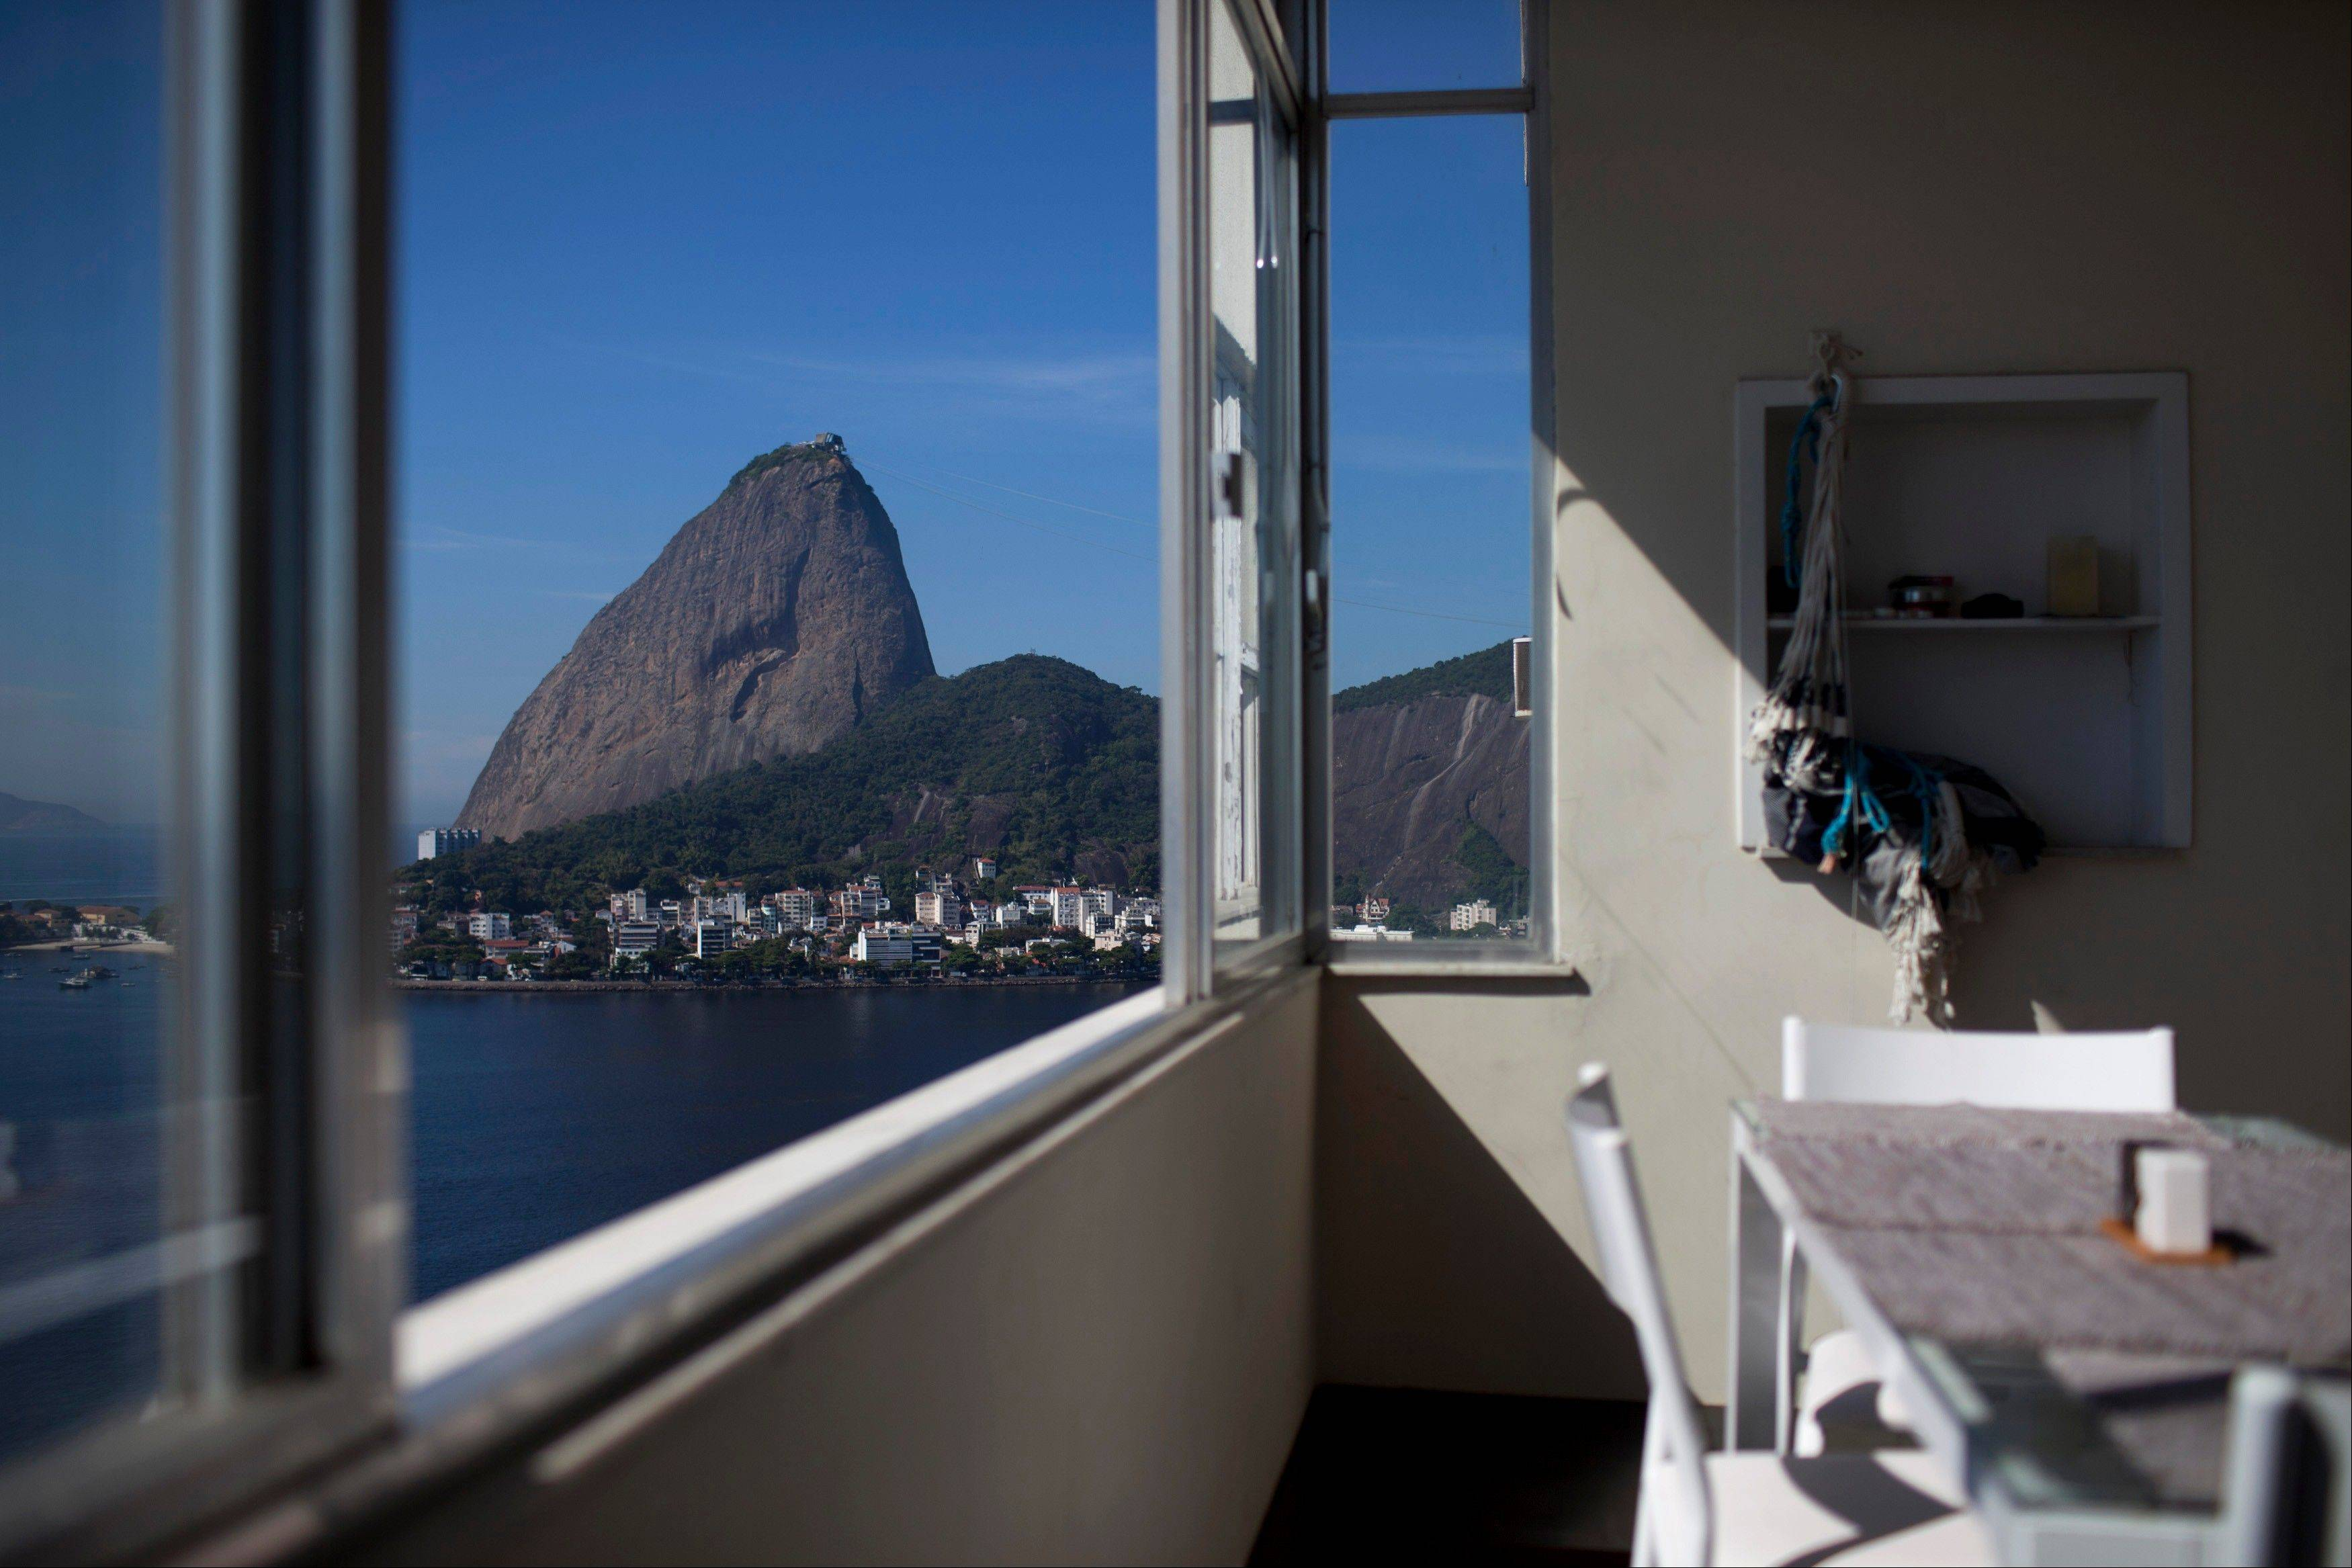 Sugarloaf mountain is visible from an apartment in the Flamengo neighborhood of Rio de Janeiro, Brazil. Brazilís burgeoning middle class is moving up in the world, into fancier high-rises. The discovery of vast oil deposits off the coast has flooded the city with renters carrying fistfuls of petrodollars. And property owners already are hiking rents in anticipation of Rio's upcoming mega-events, the 2014 soccer World Cup and 2016 Olympics.